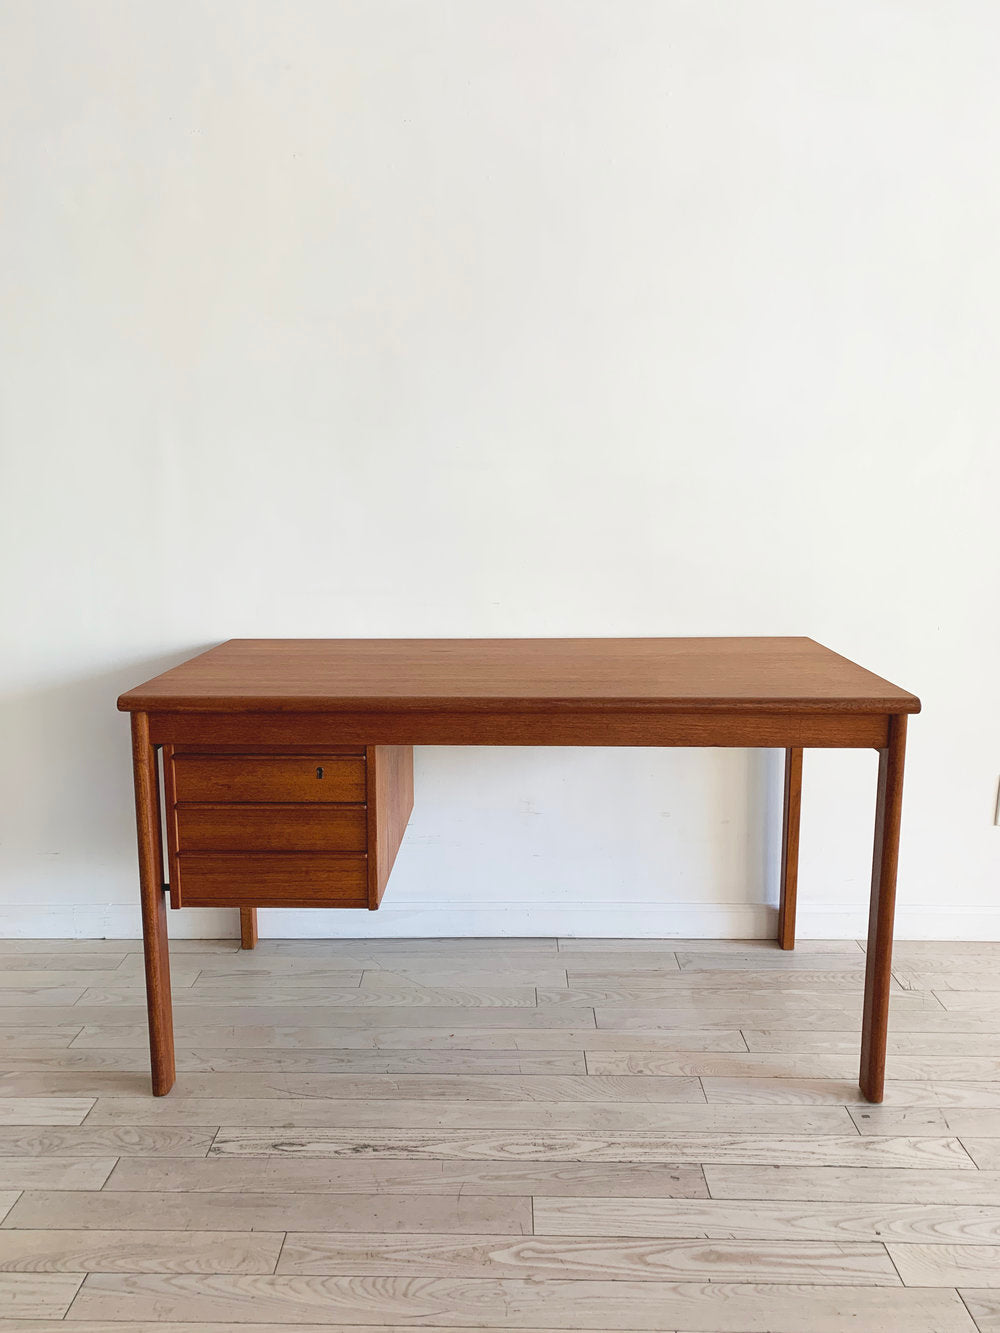 Danish Teak Mid Century Sliding Top Desk by Peter Loving Nielson, 1978